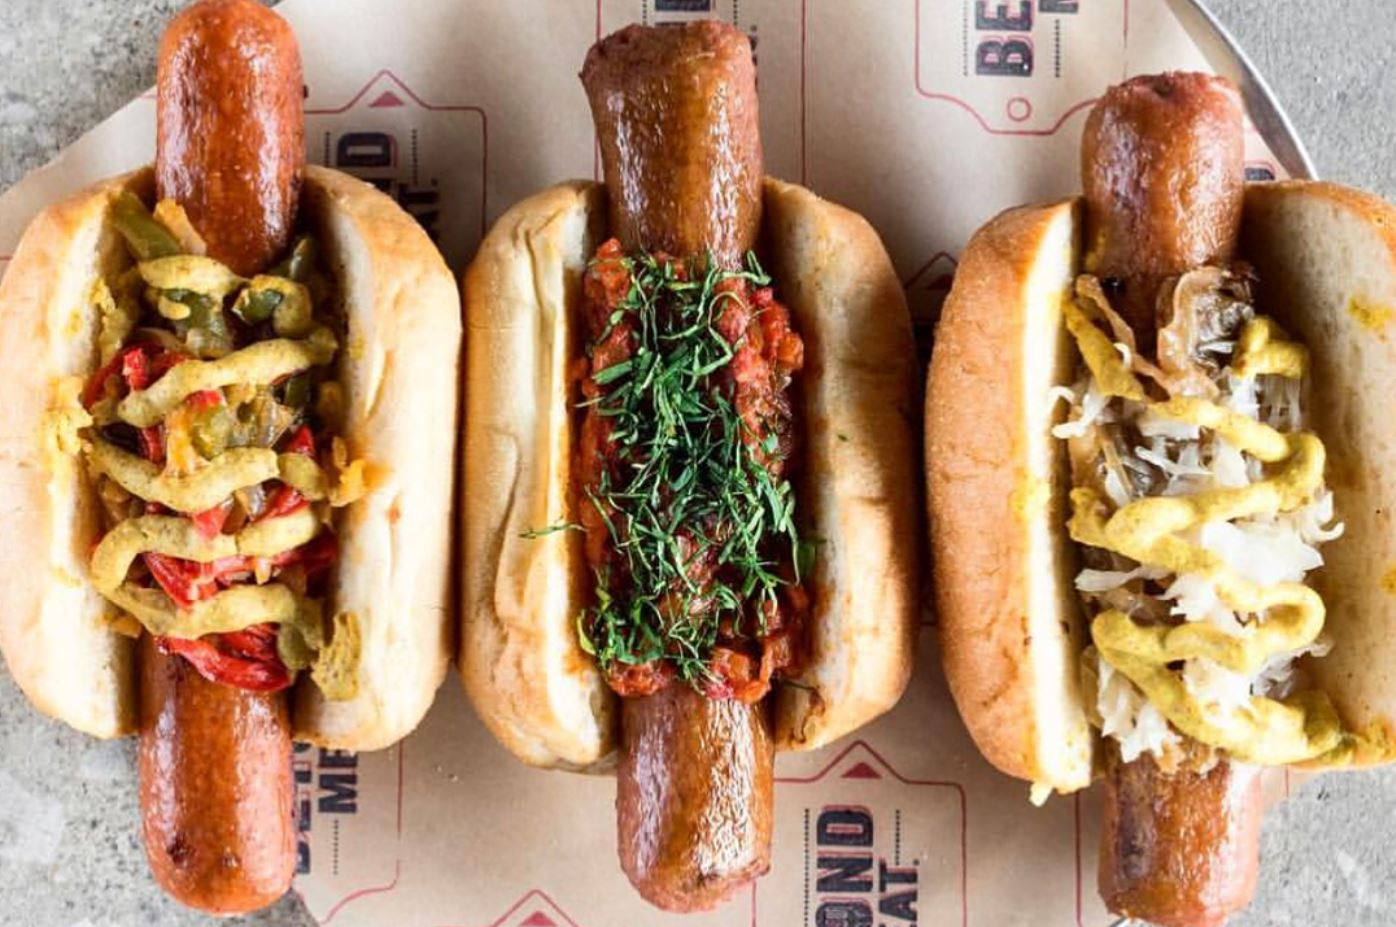 Vegan Sausages Launch at Lord of the Fries in Australia